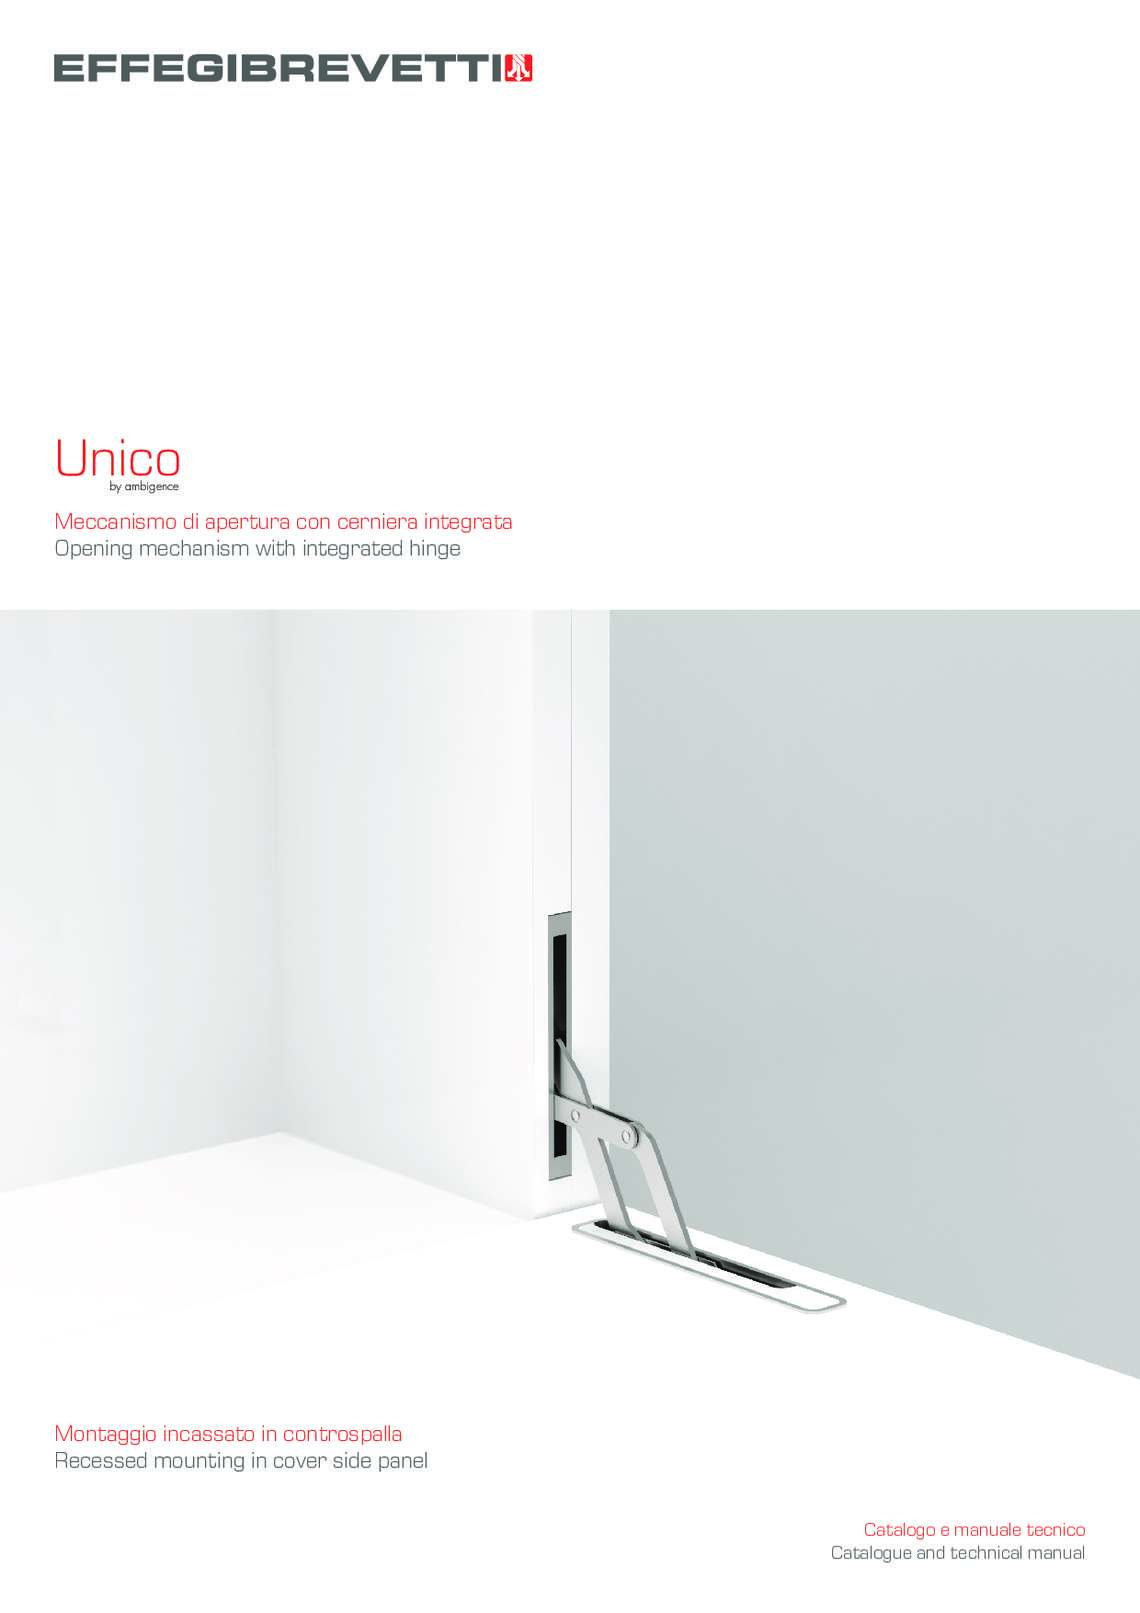 Unico - Opening mechanism with integrated hinge and recessed mounting